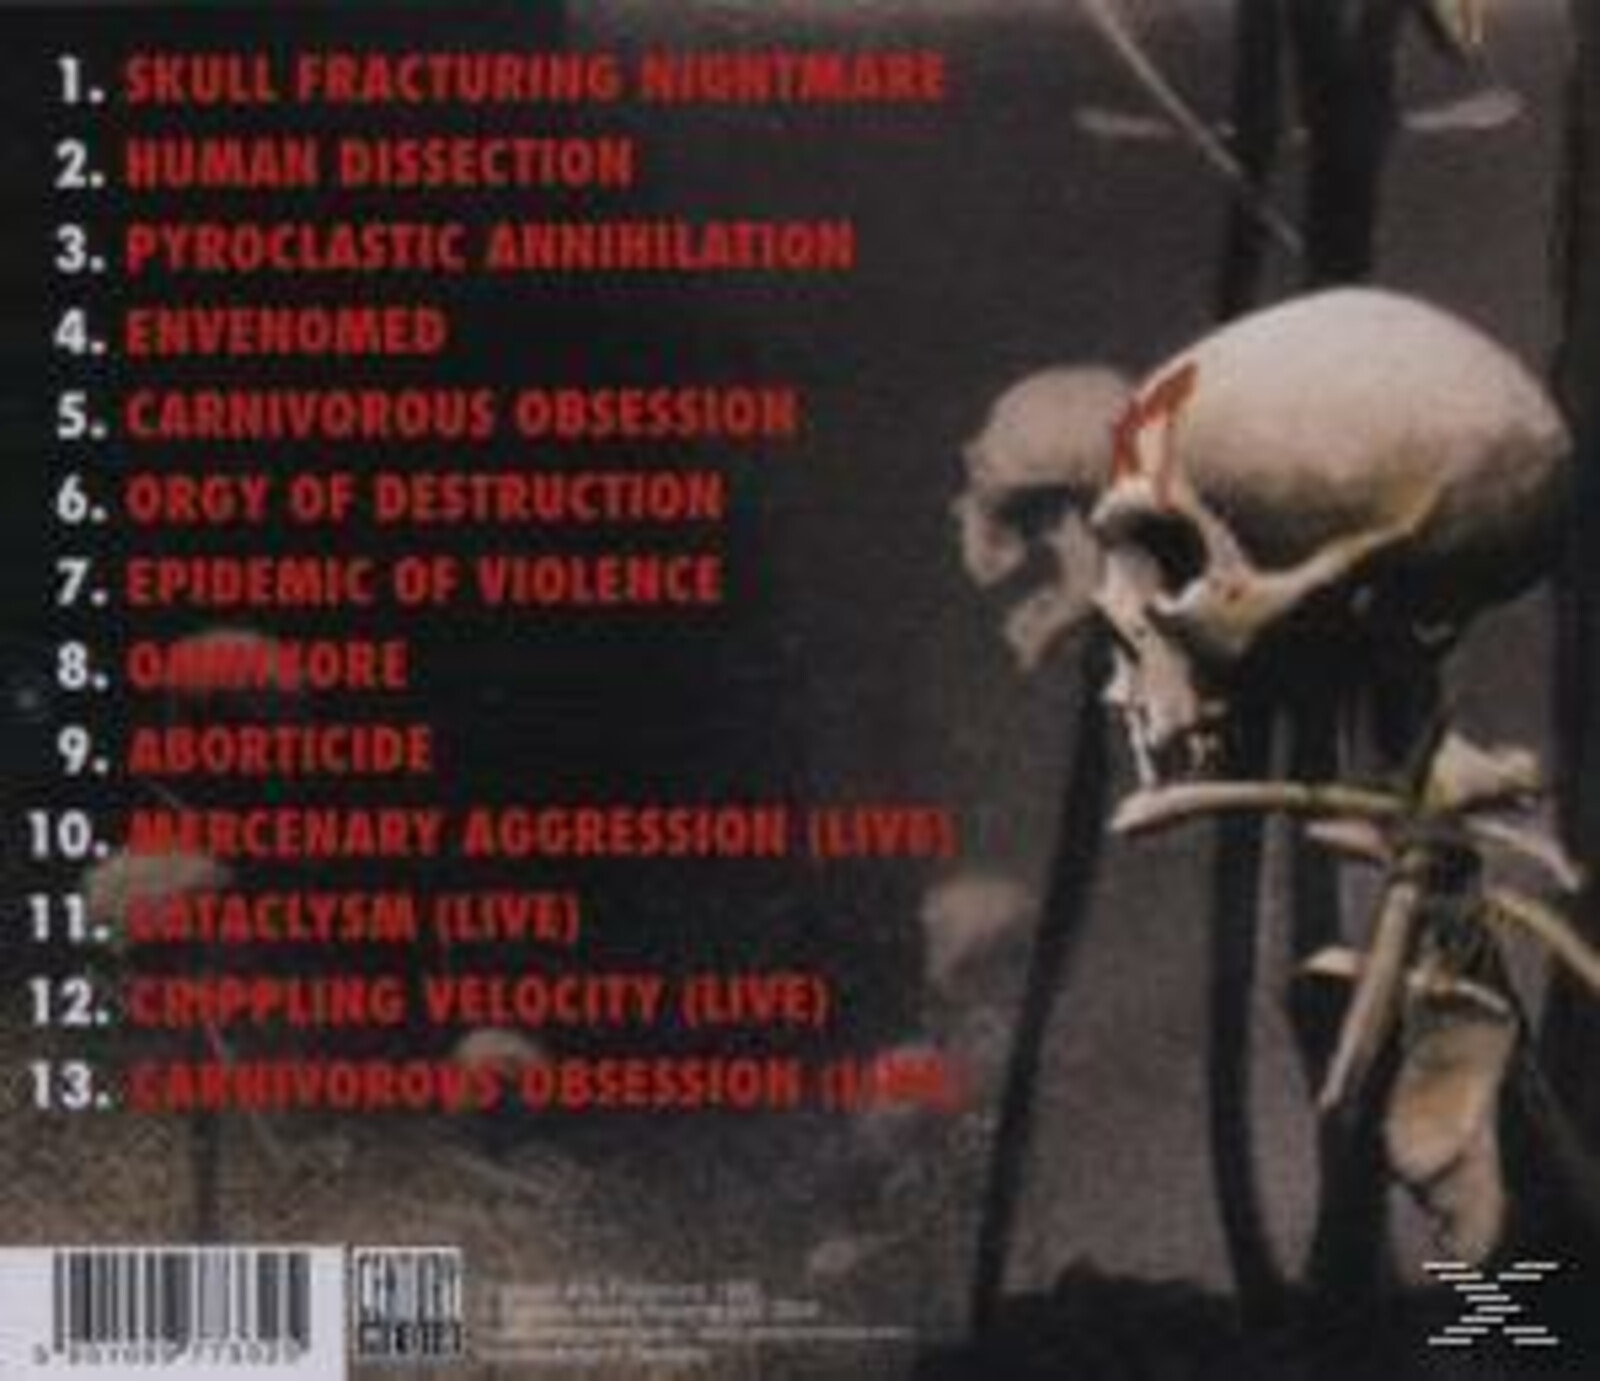 Xpowerpack - Declaration/Hvy 1 - (CD)